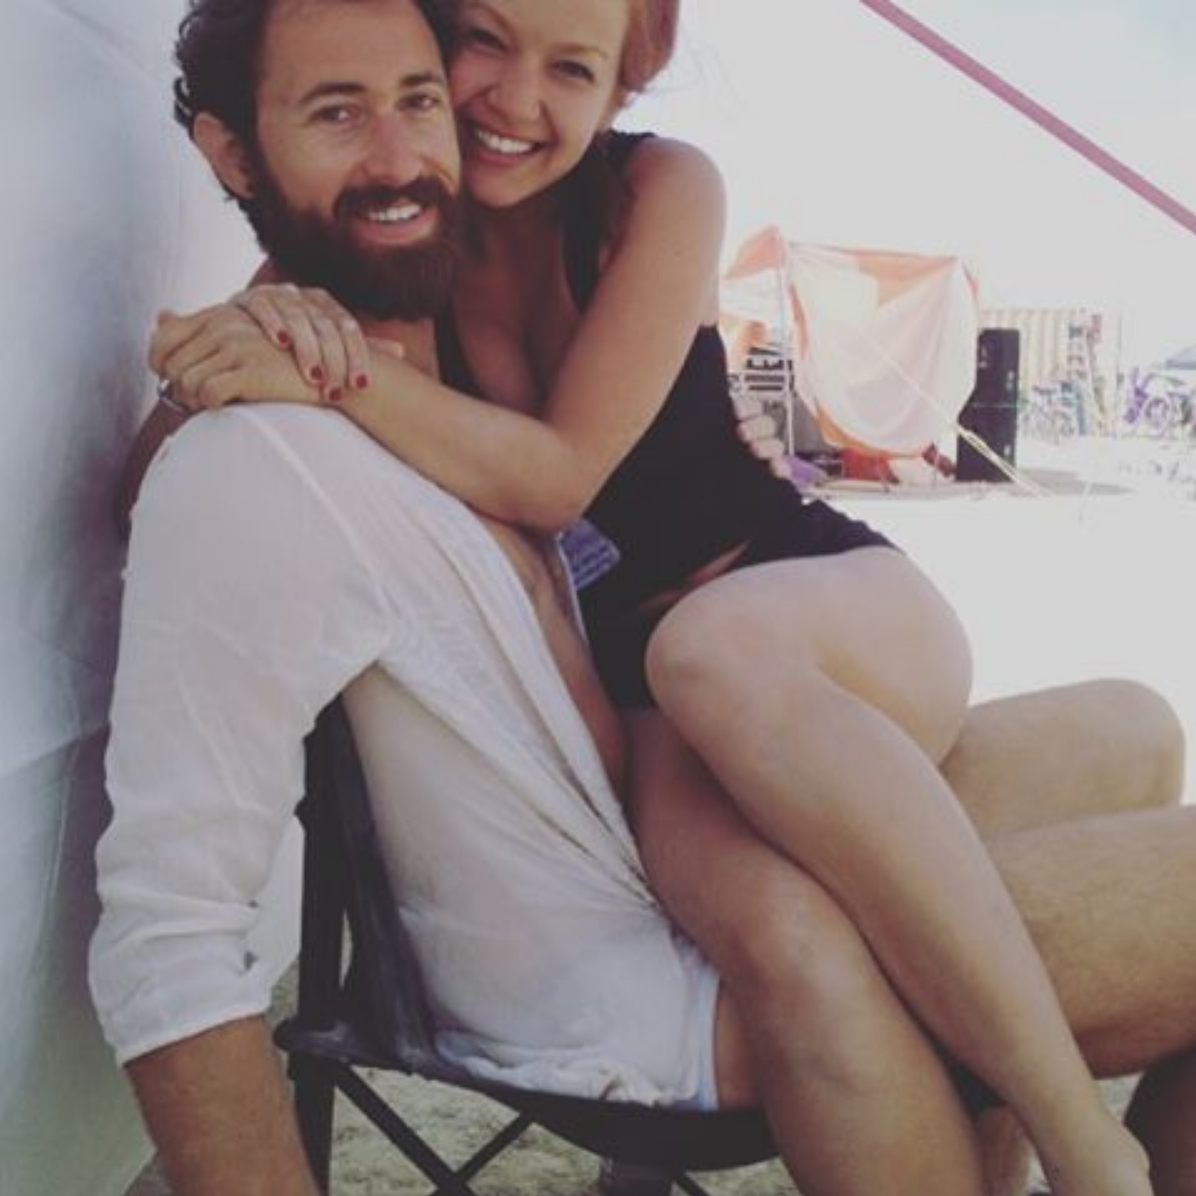 Lauren and I at Burning Man in 2015 practicing a day of silence.